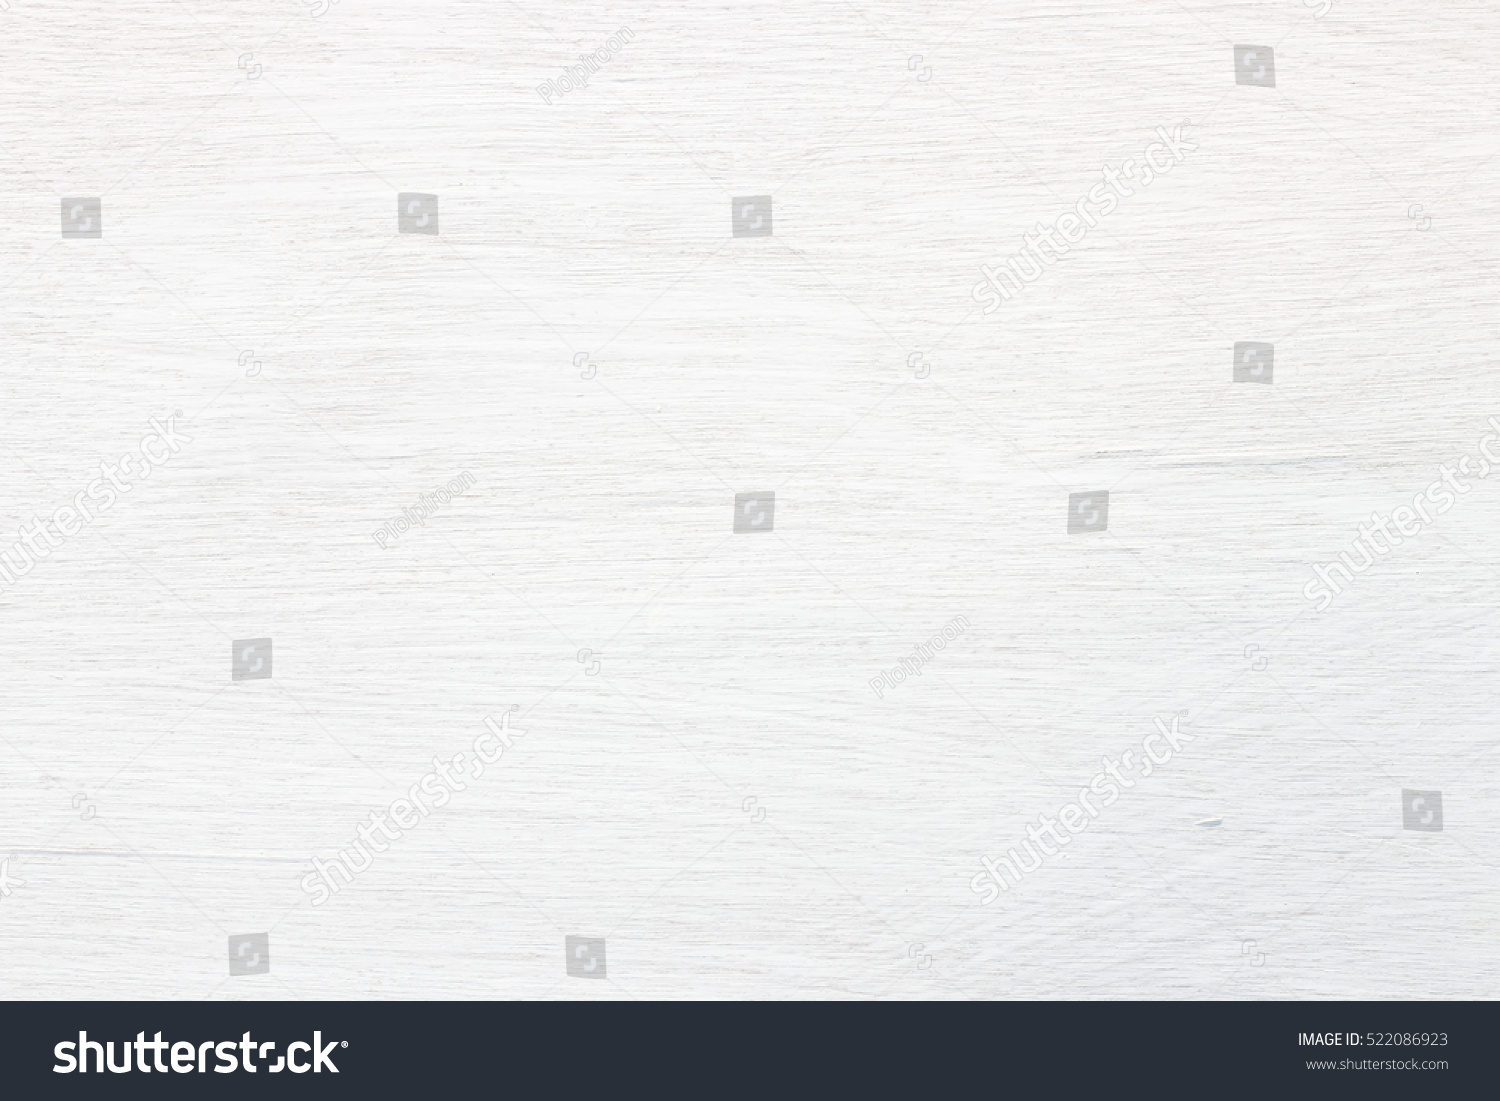 White wood plank texture for background.  #522086923